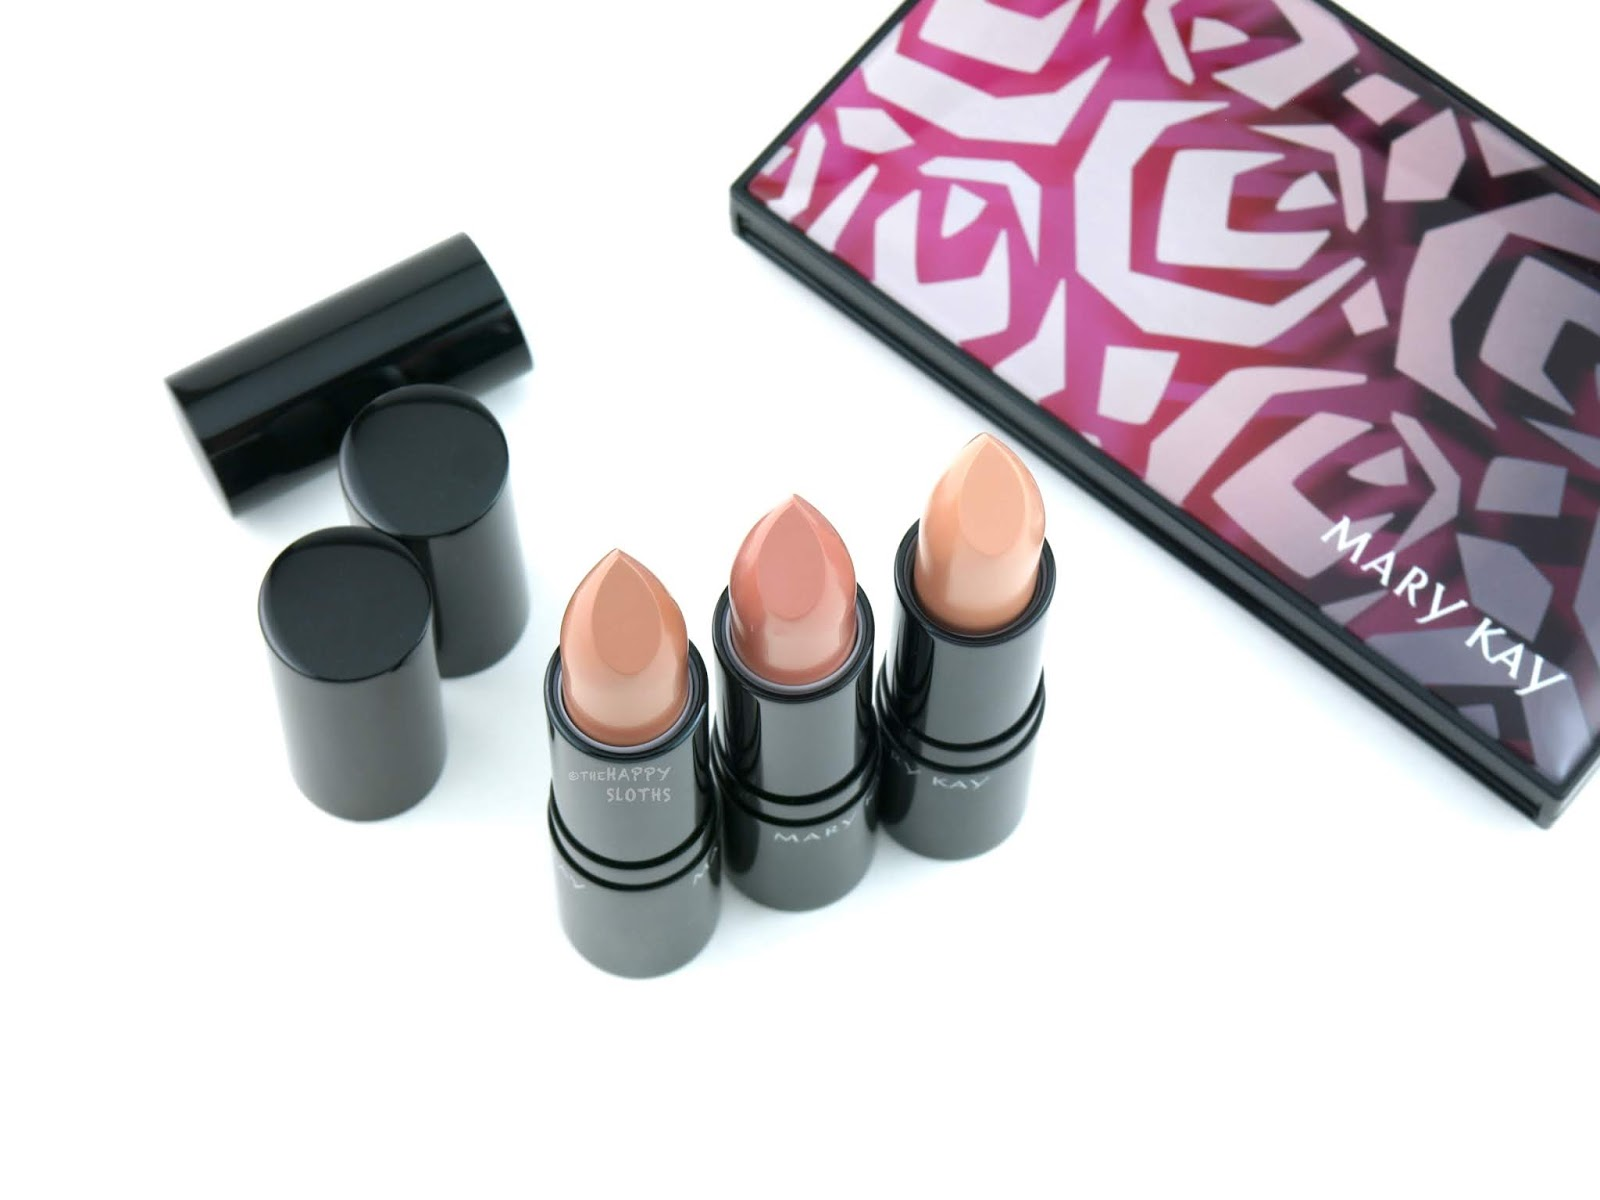 Mary Kay | Spring 2019 Matte Nude Lipsticks: Review and Swatches